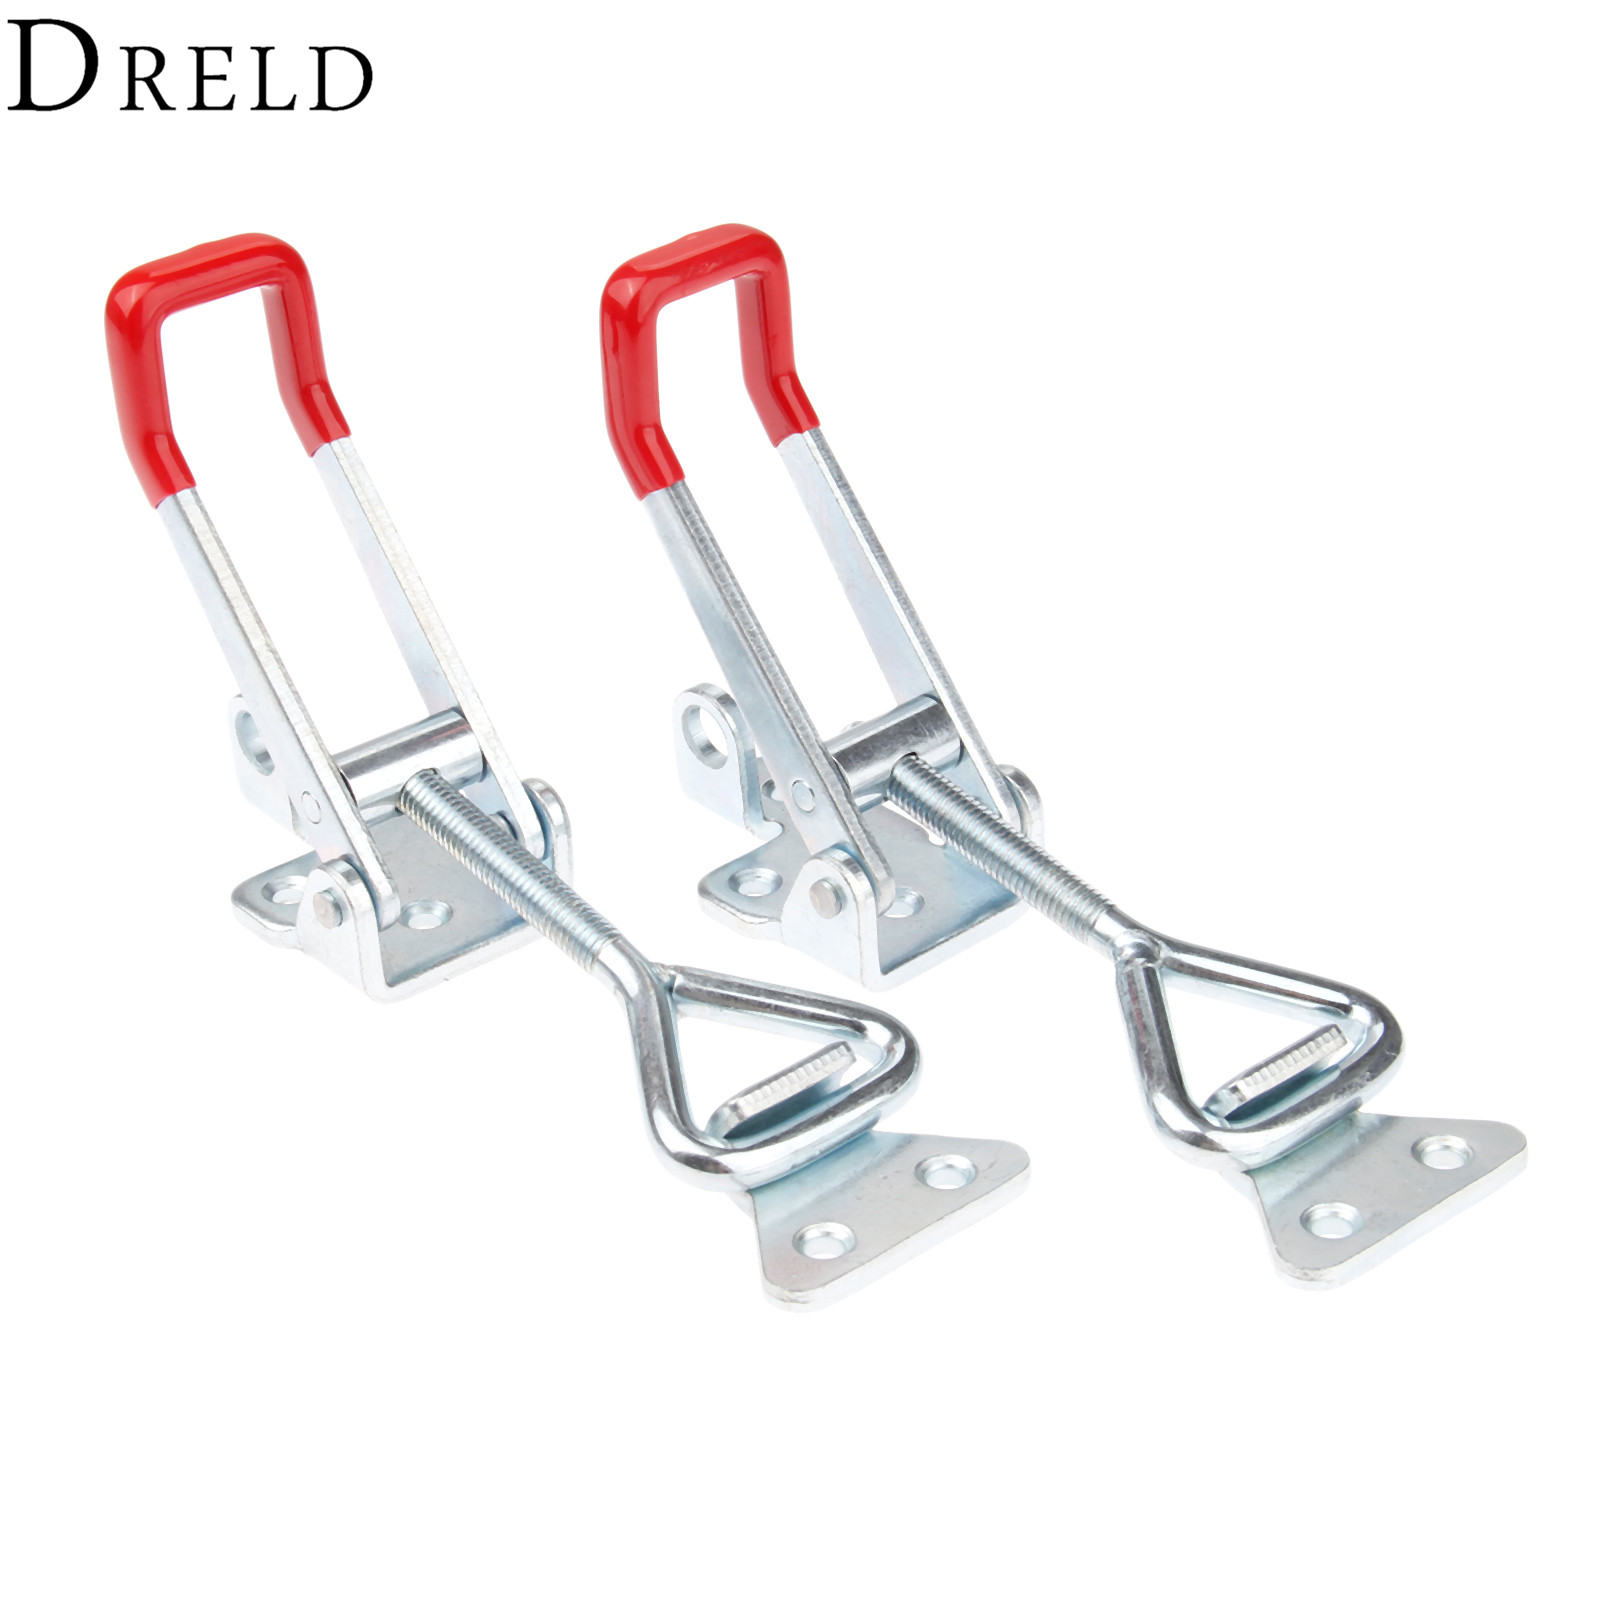 DRELD 2pcs GH-4003 Parighasana Toggle Clamp Clip 300KG/661Lbs Holding Capacity Quick Metal Latch Hand Tool Fixture Clamp